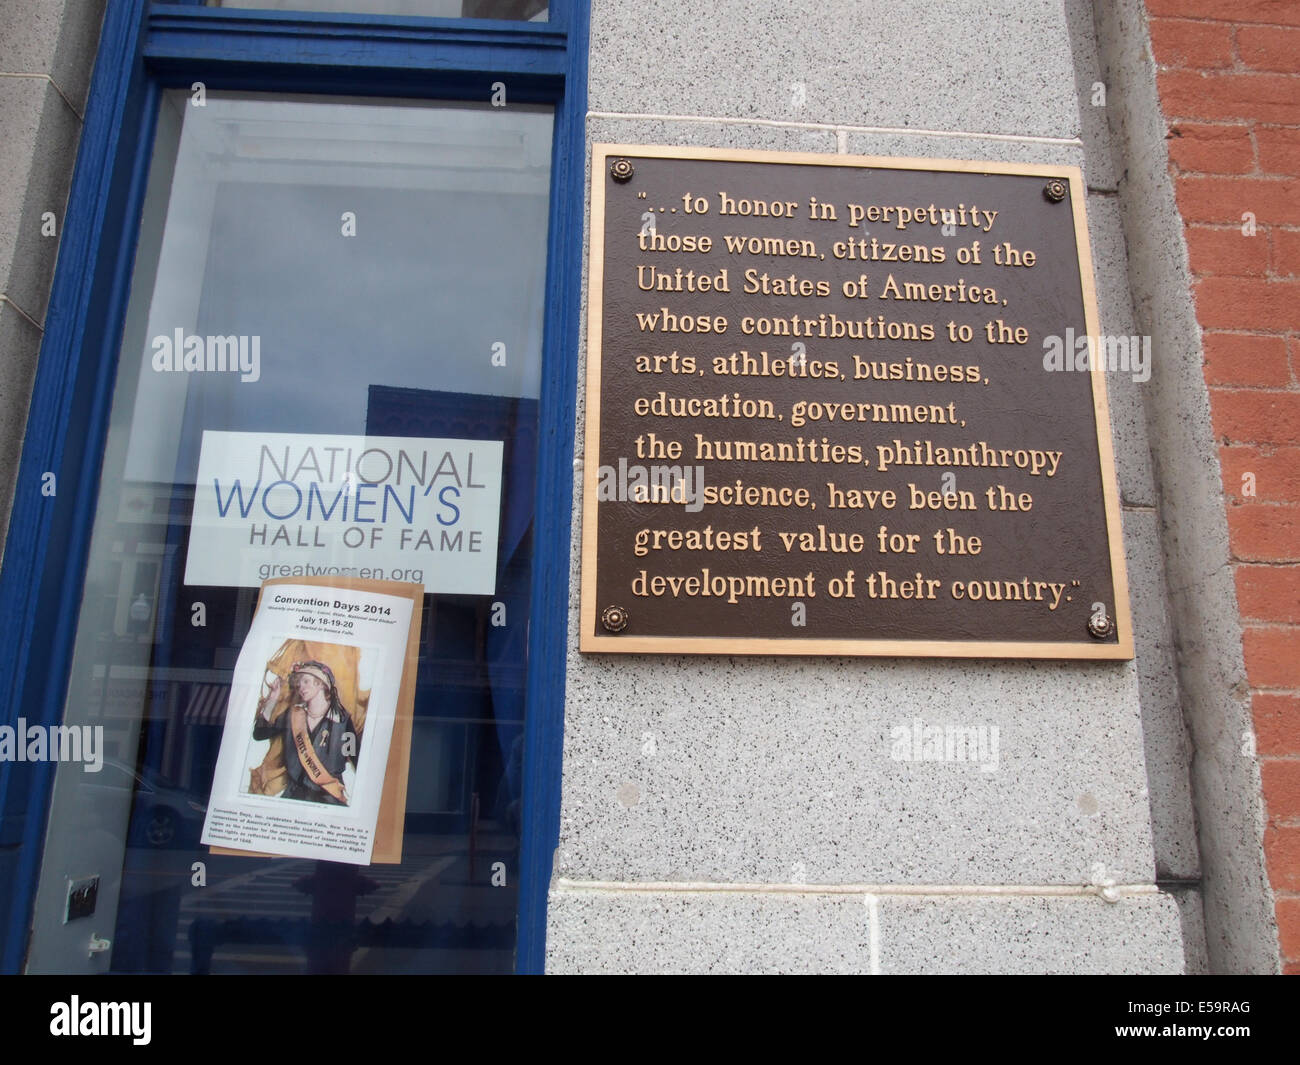 Placard at entrance to National Women's Hall of Fame, Seneca Falls, NY, USA, June 14, 2014, © Katharine Andriotis Stock Photo